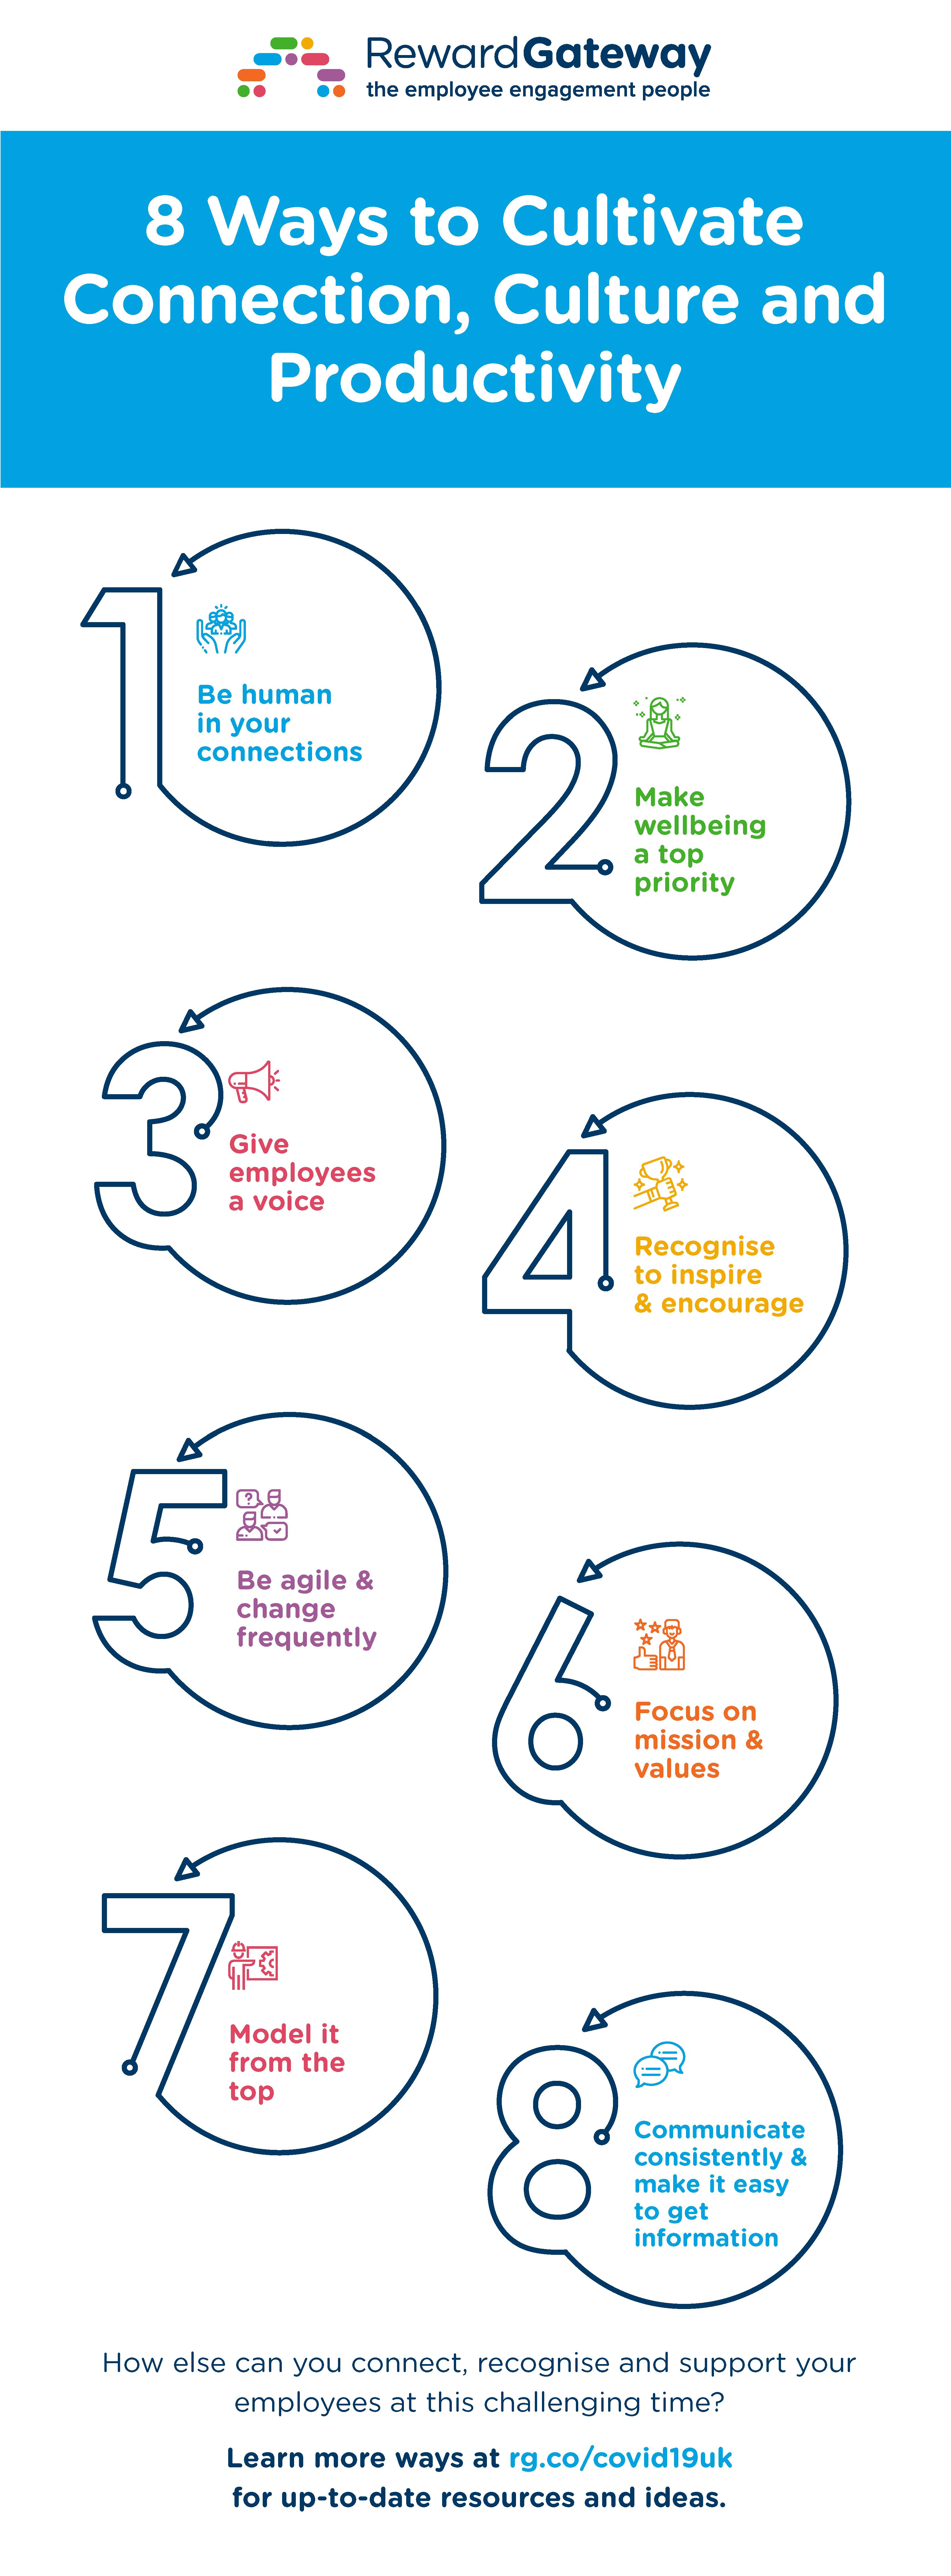 uk-infographic-8-ways-cultivate-culture-connection-productivity